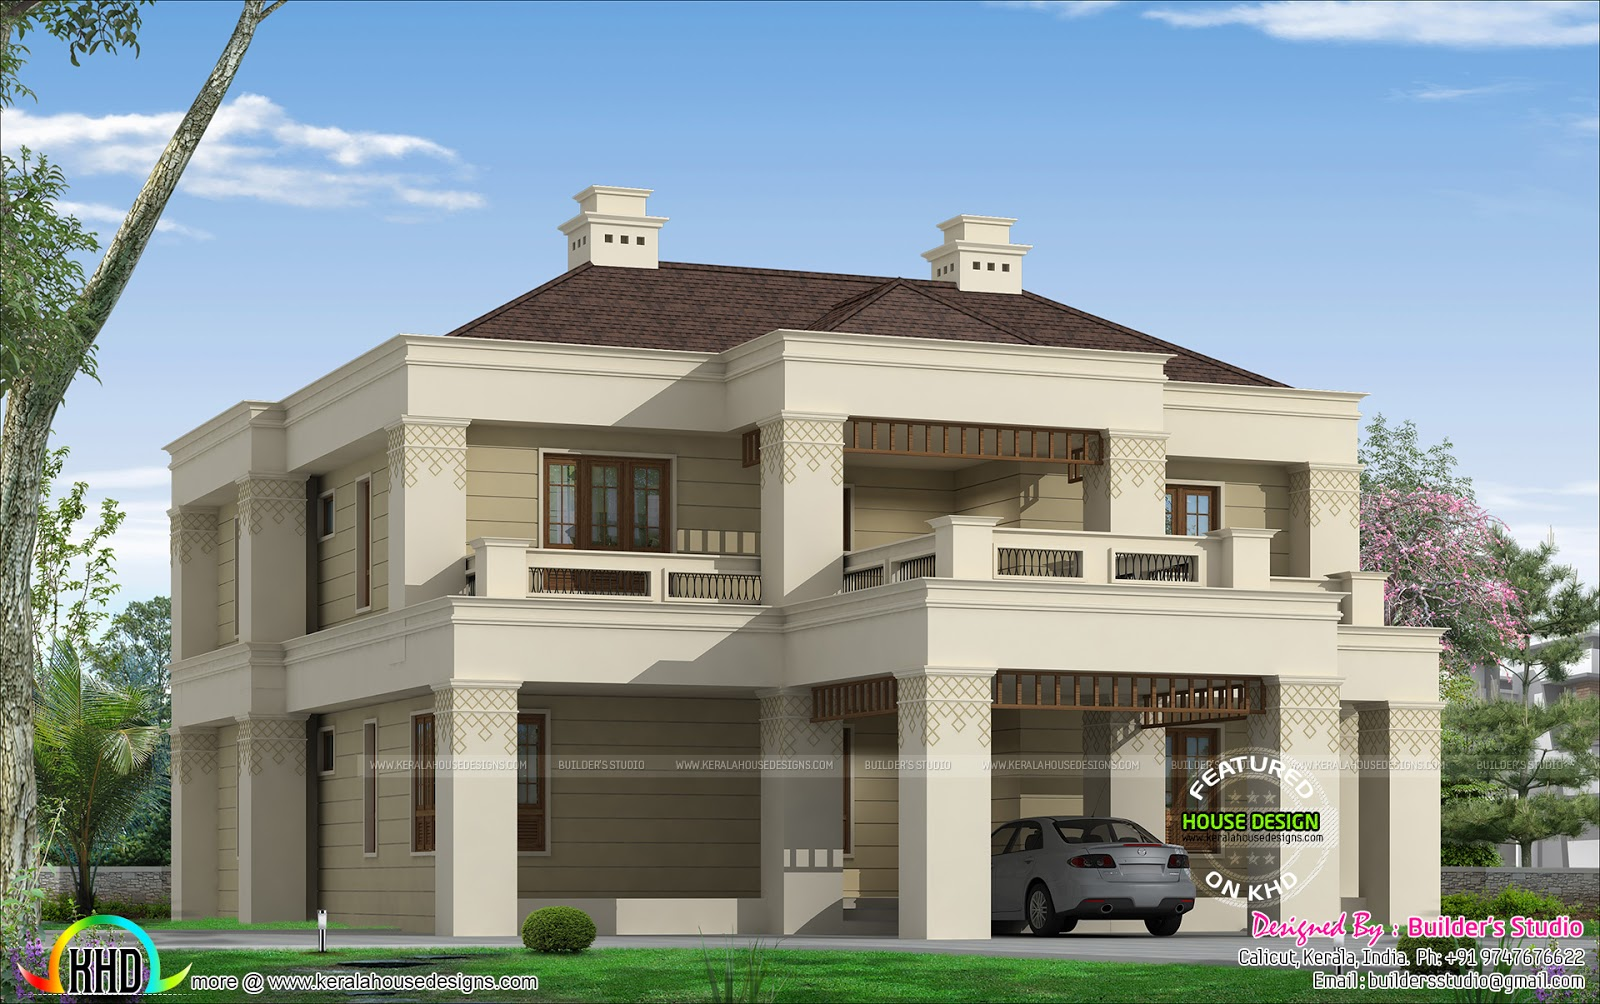 Kerala colonial home kerala home design and floor plans for Colonial style home design in kerala